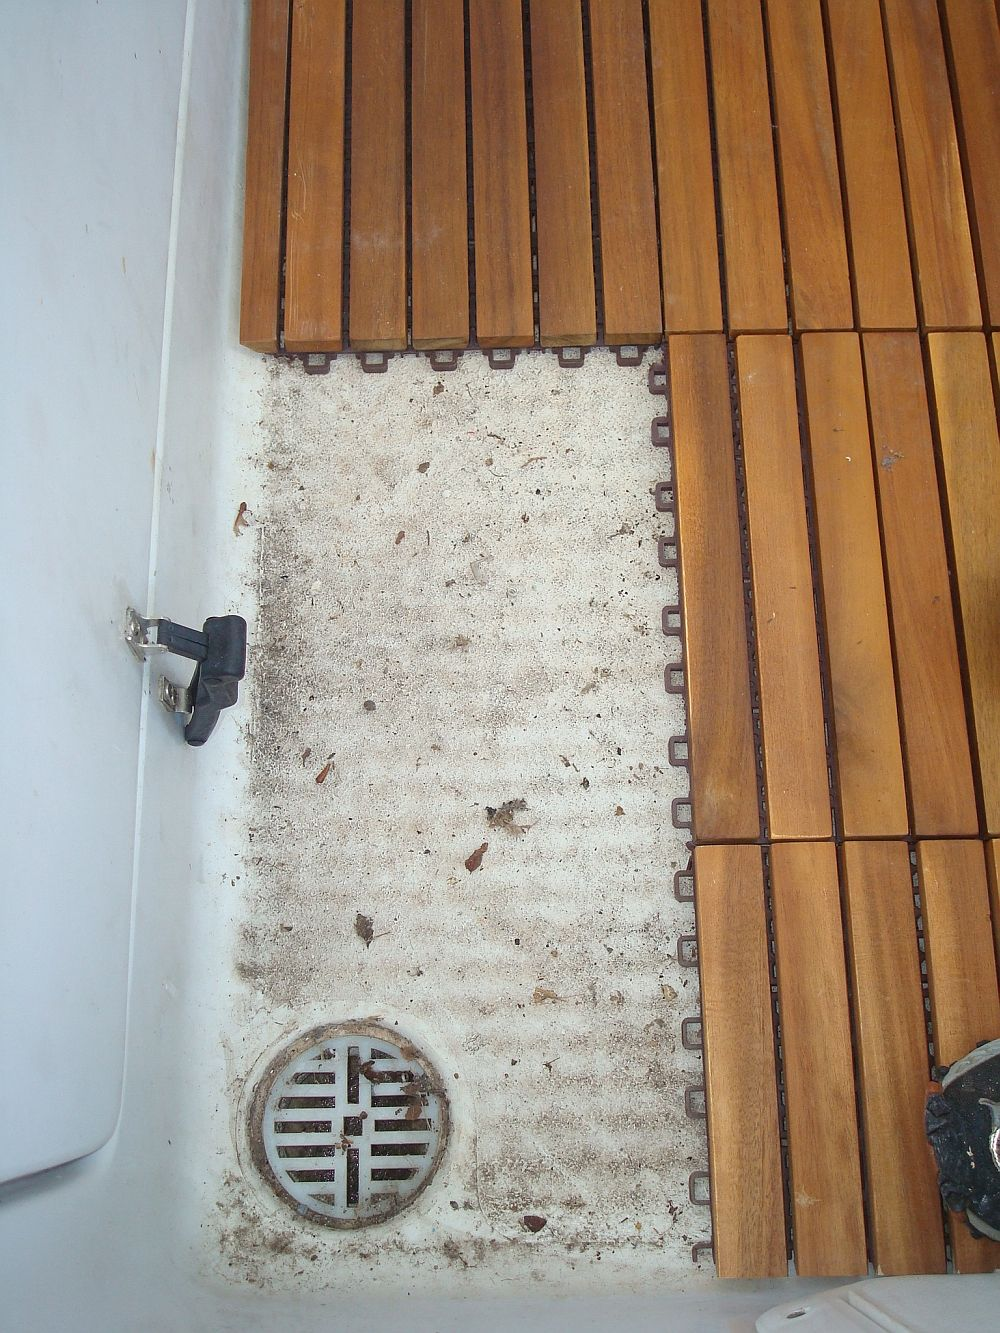 Merveilleux DIY Teak Tile Flooring: Use Teak Tiles To Refresh An Old Deck Or Floor!  Http://www.teakwoodcentral.com/le Click Teak Flooring